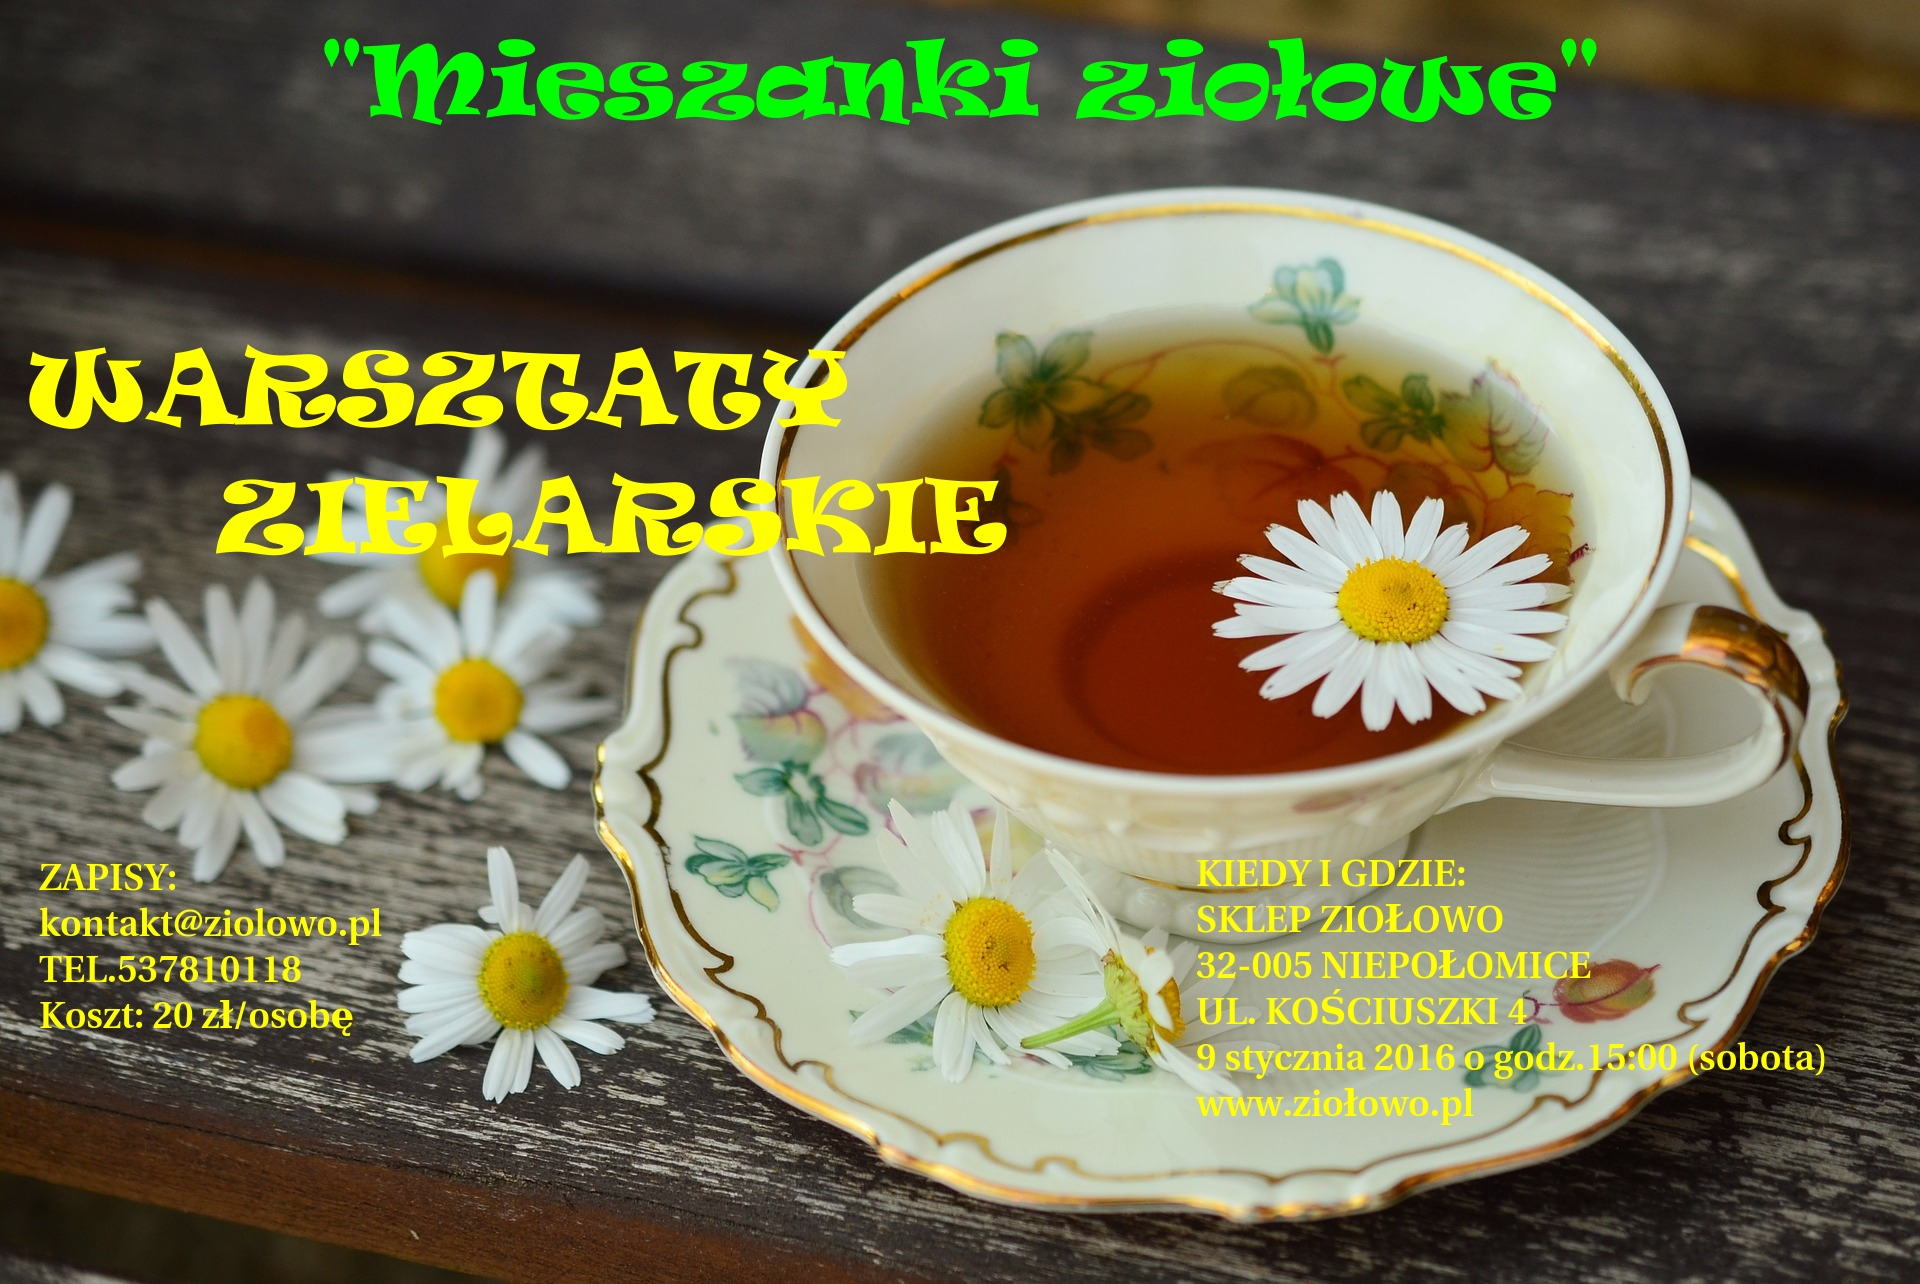 cup-829527_1920(1)